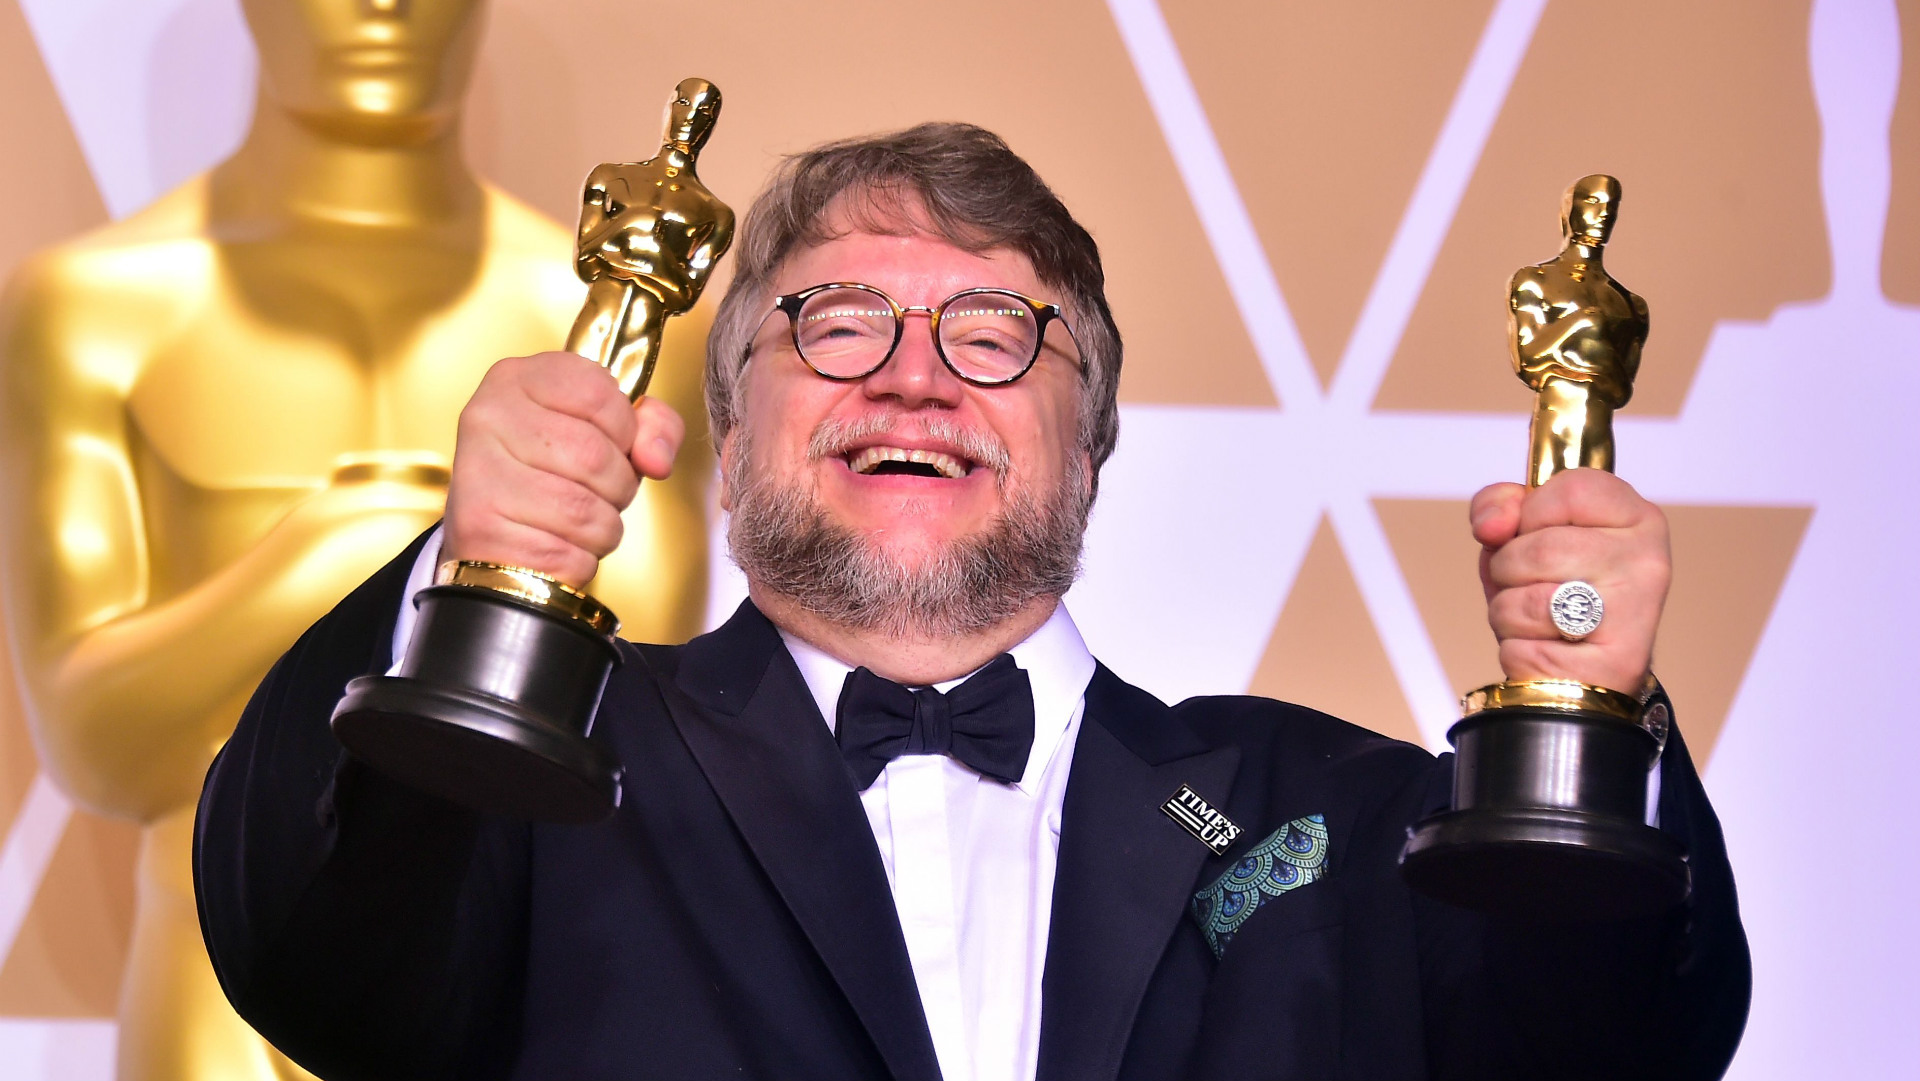 Guillermo del Toro Wins Oscar For Best Director For 'Shape Of Water'